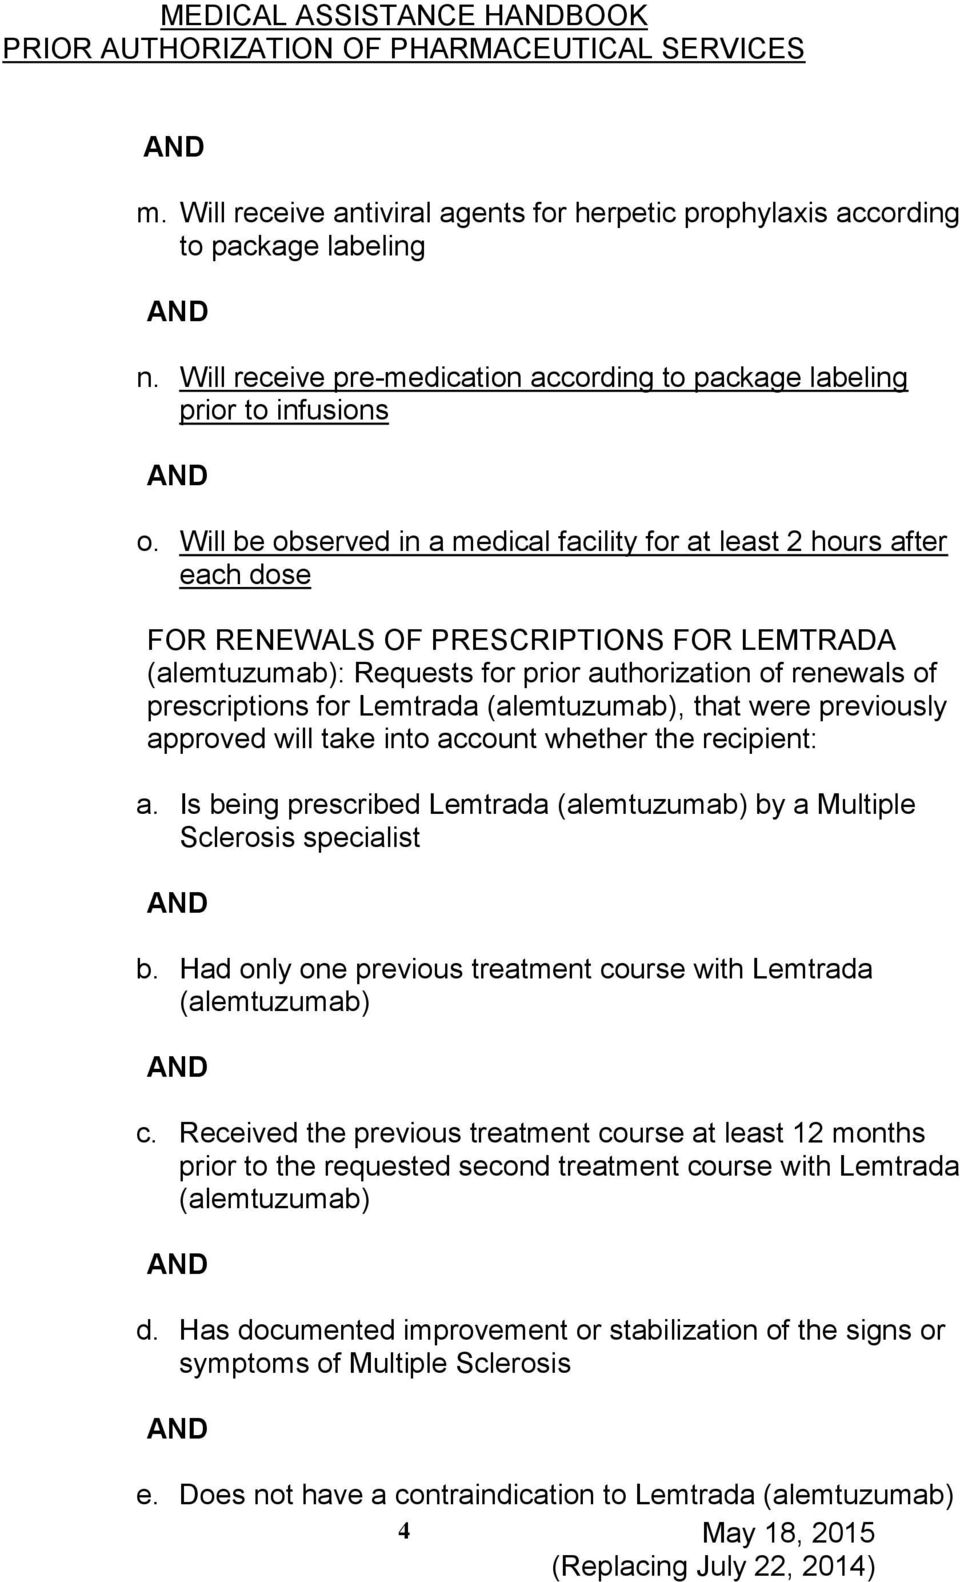 Lemtrada (alemtuzumab), that were previously approved will take into account whether the recipient: a. Is being prescribed Lemtrada (alemtuzumab) by a Multiple Sclerosis specialist b.